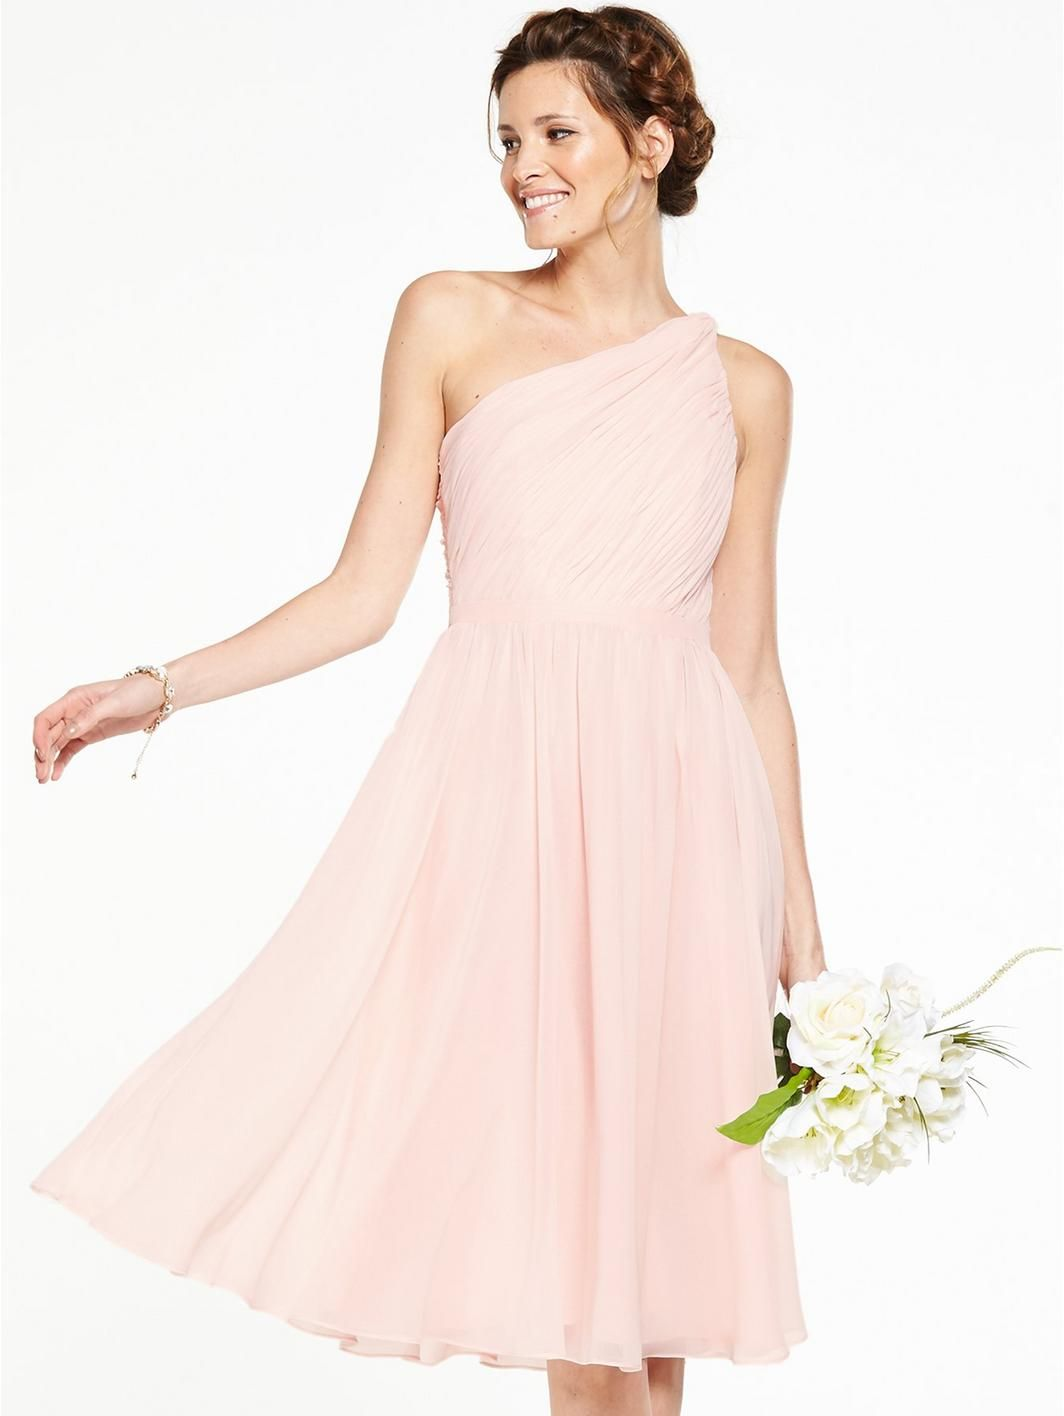 Littlewoods dresses for weddings  V by Very Bridesmaids One Shoulder Prom Dress